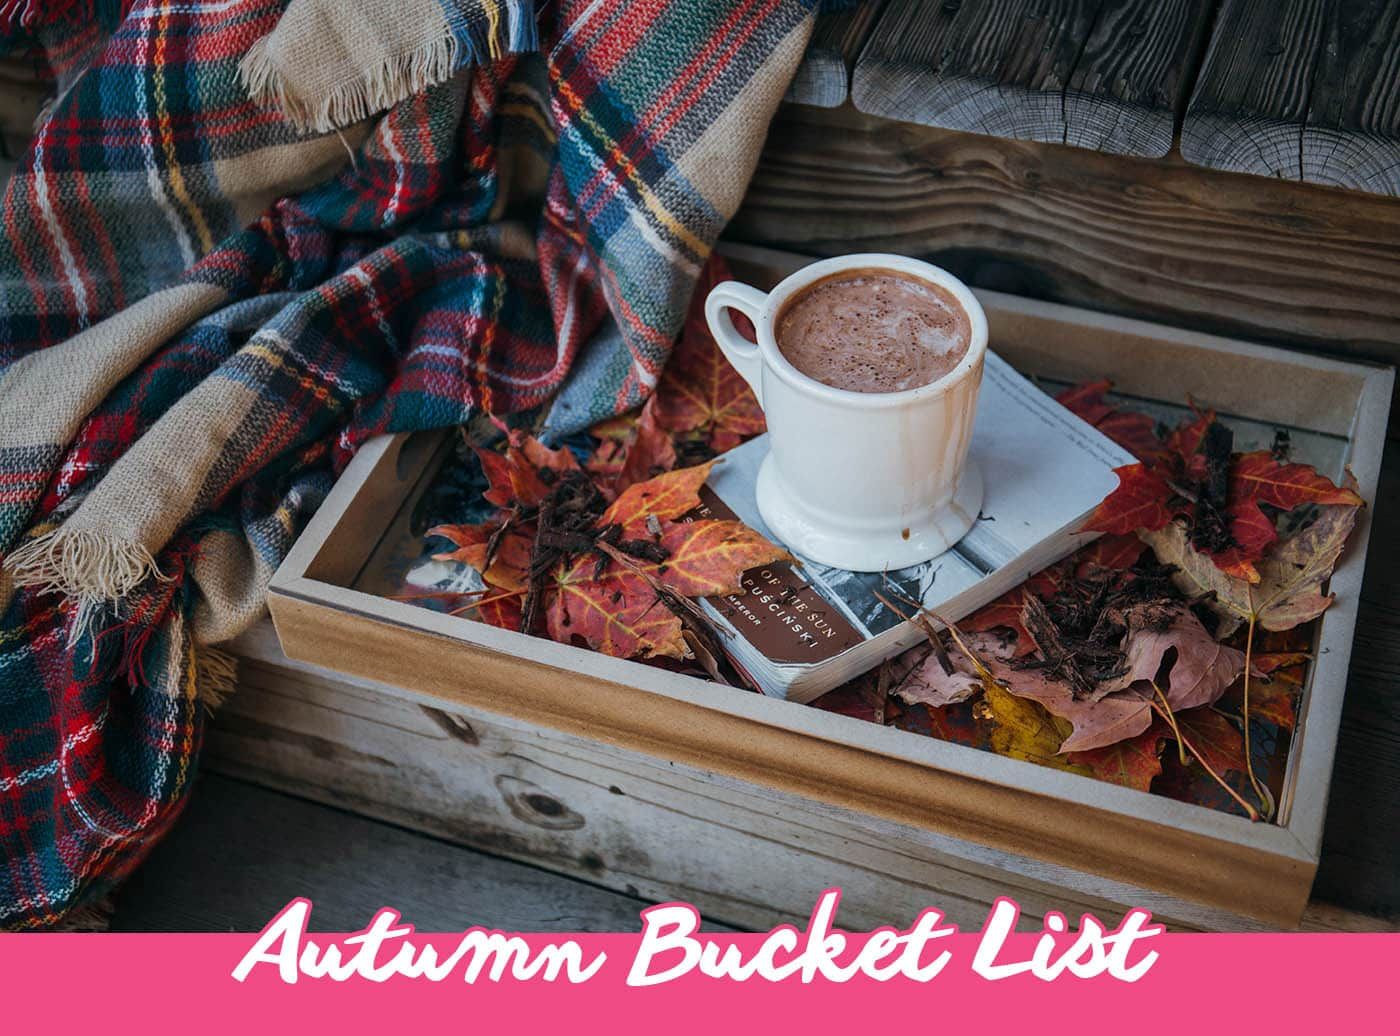 Autumn Bucket List - Things to do in Fall | Bucket List Inspiration & Ideas